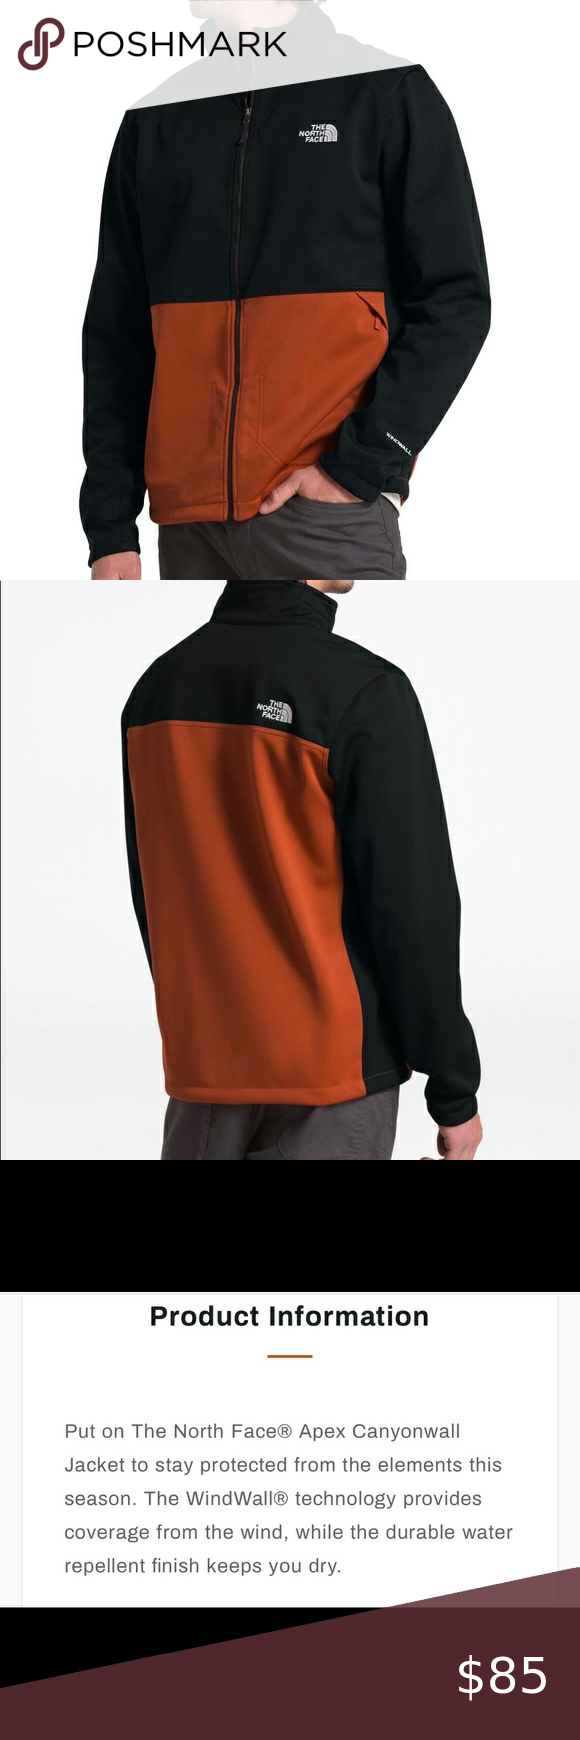 Nwt North Face Apex Cannonwall Full Zip Jacket Xl Jackets Zip Jackets North Face Jacket [ 1740 x 580 Pixel ]